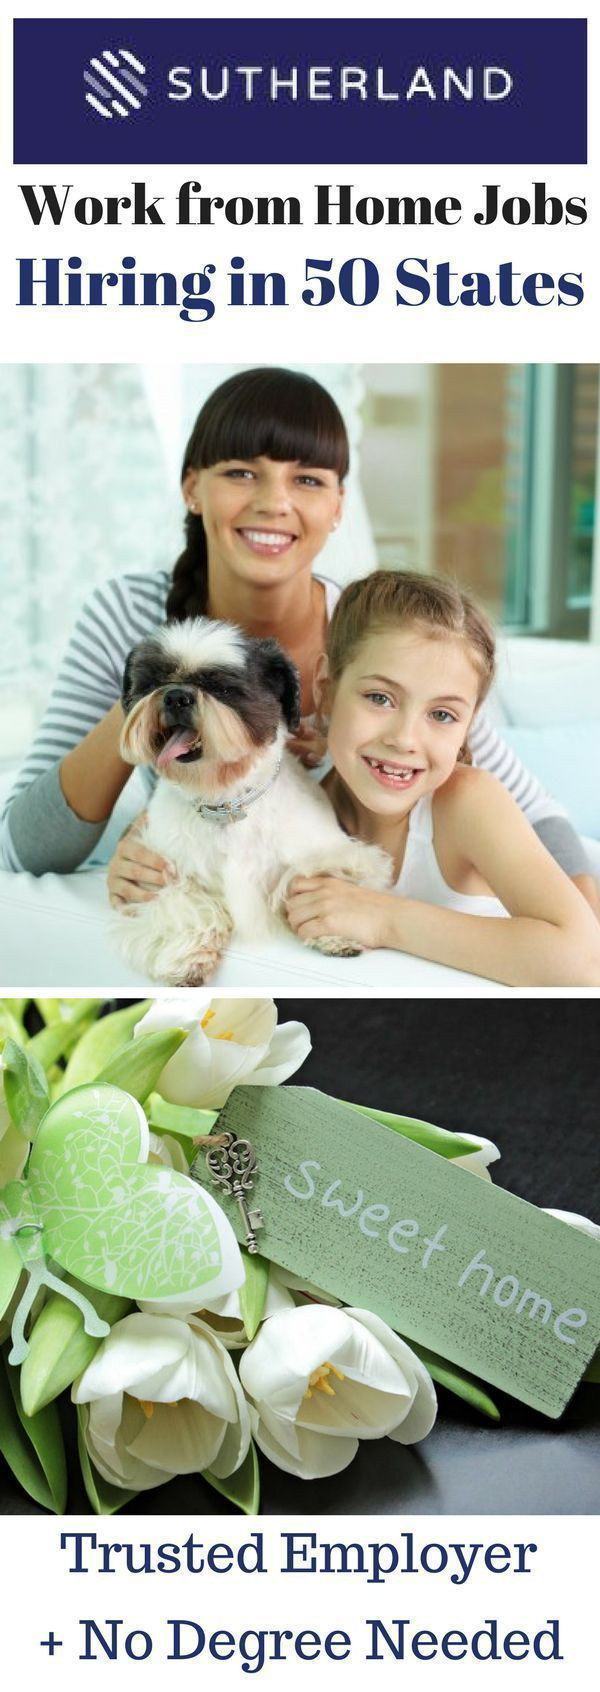 Stay at Home Mom Jobs. Work at Home Mom Jobs. Apply for Sutherland Work from Home Jobs, Make Money from Home and Earn Extra Cash Every Week. Best Stay at Home Jobs for Stay at Home Moms and Work at Home Moms. #love #recipe #diy #workfromhome